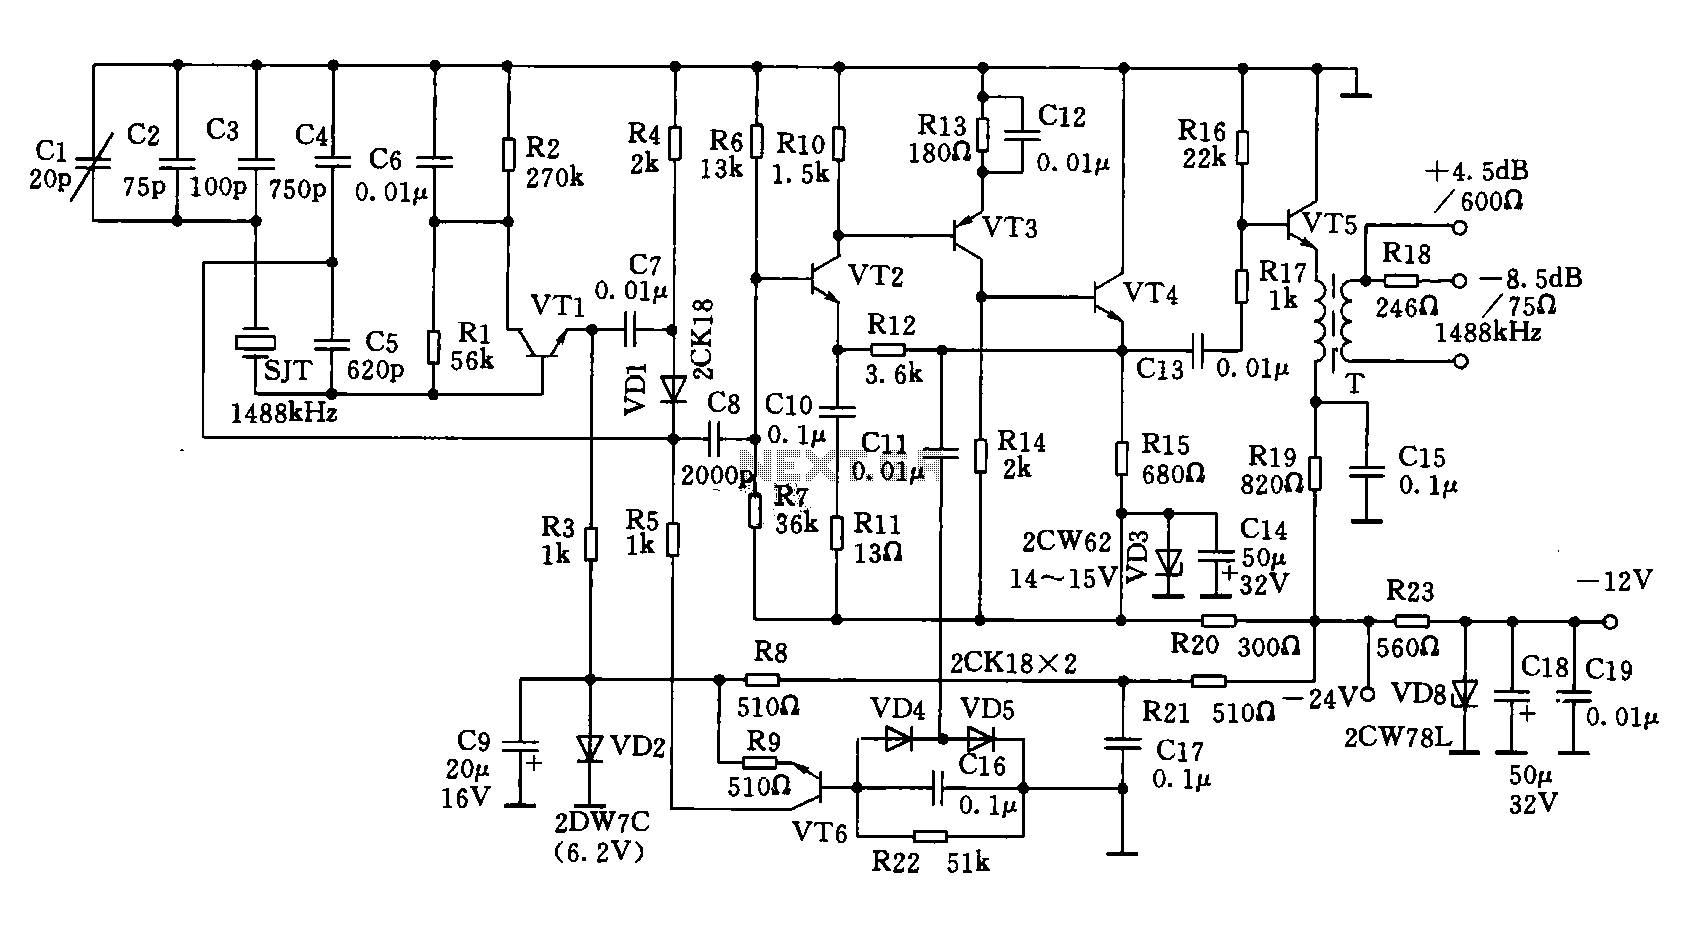 Popular Circuits Page 18 Integrated Circuit4558d Ic Circuitintegrated 1488khz Signal Generator And Frequency Divider Circuit